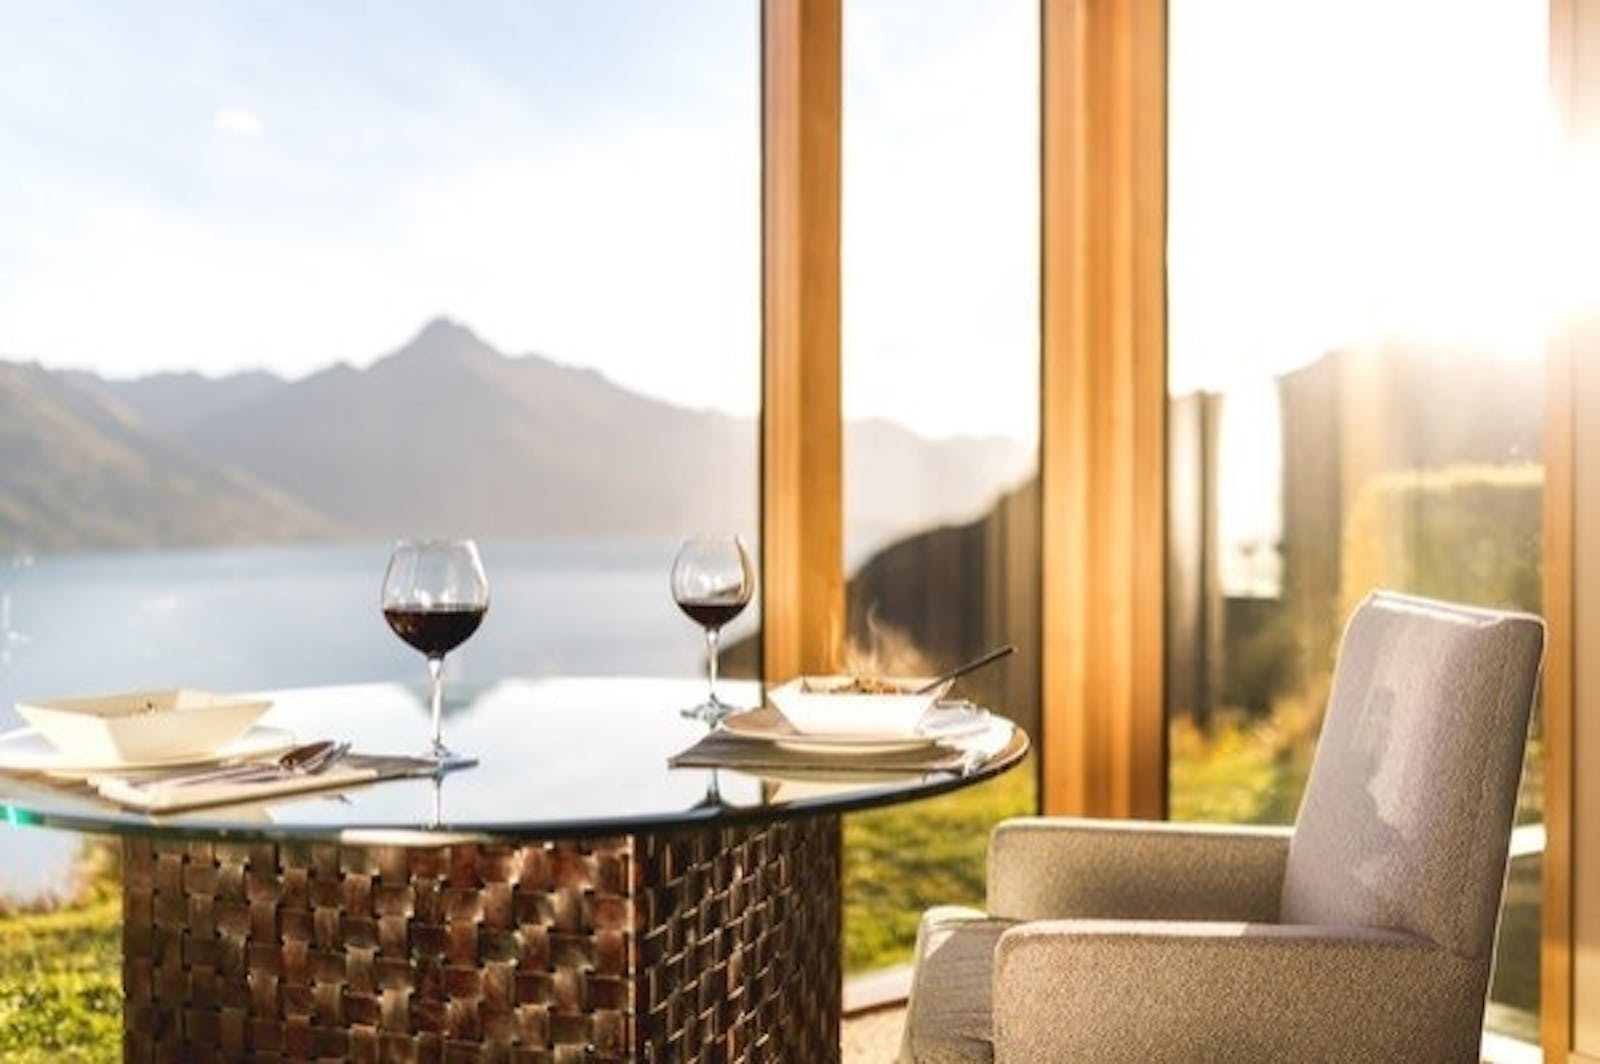 Dining Table restaurant at Azur Lodge, Queenstown, South Island, New Zealand